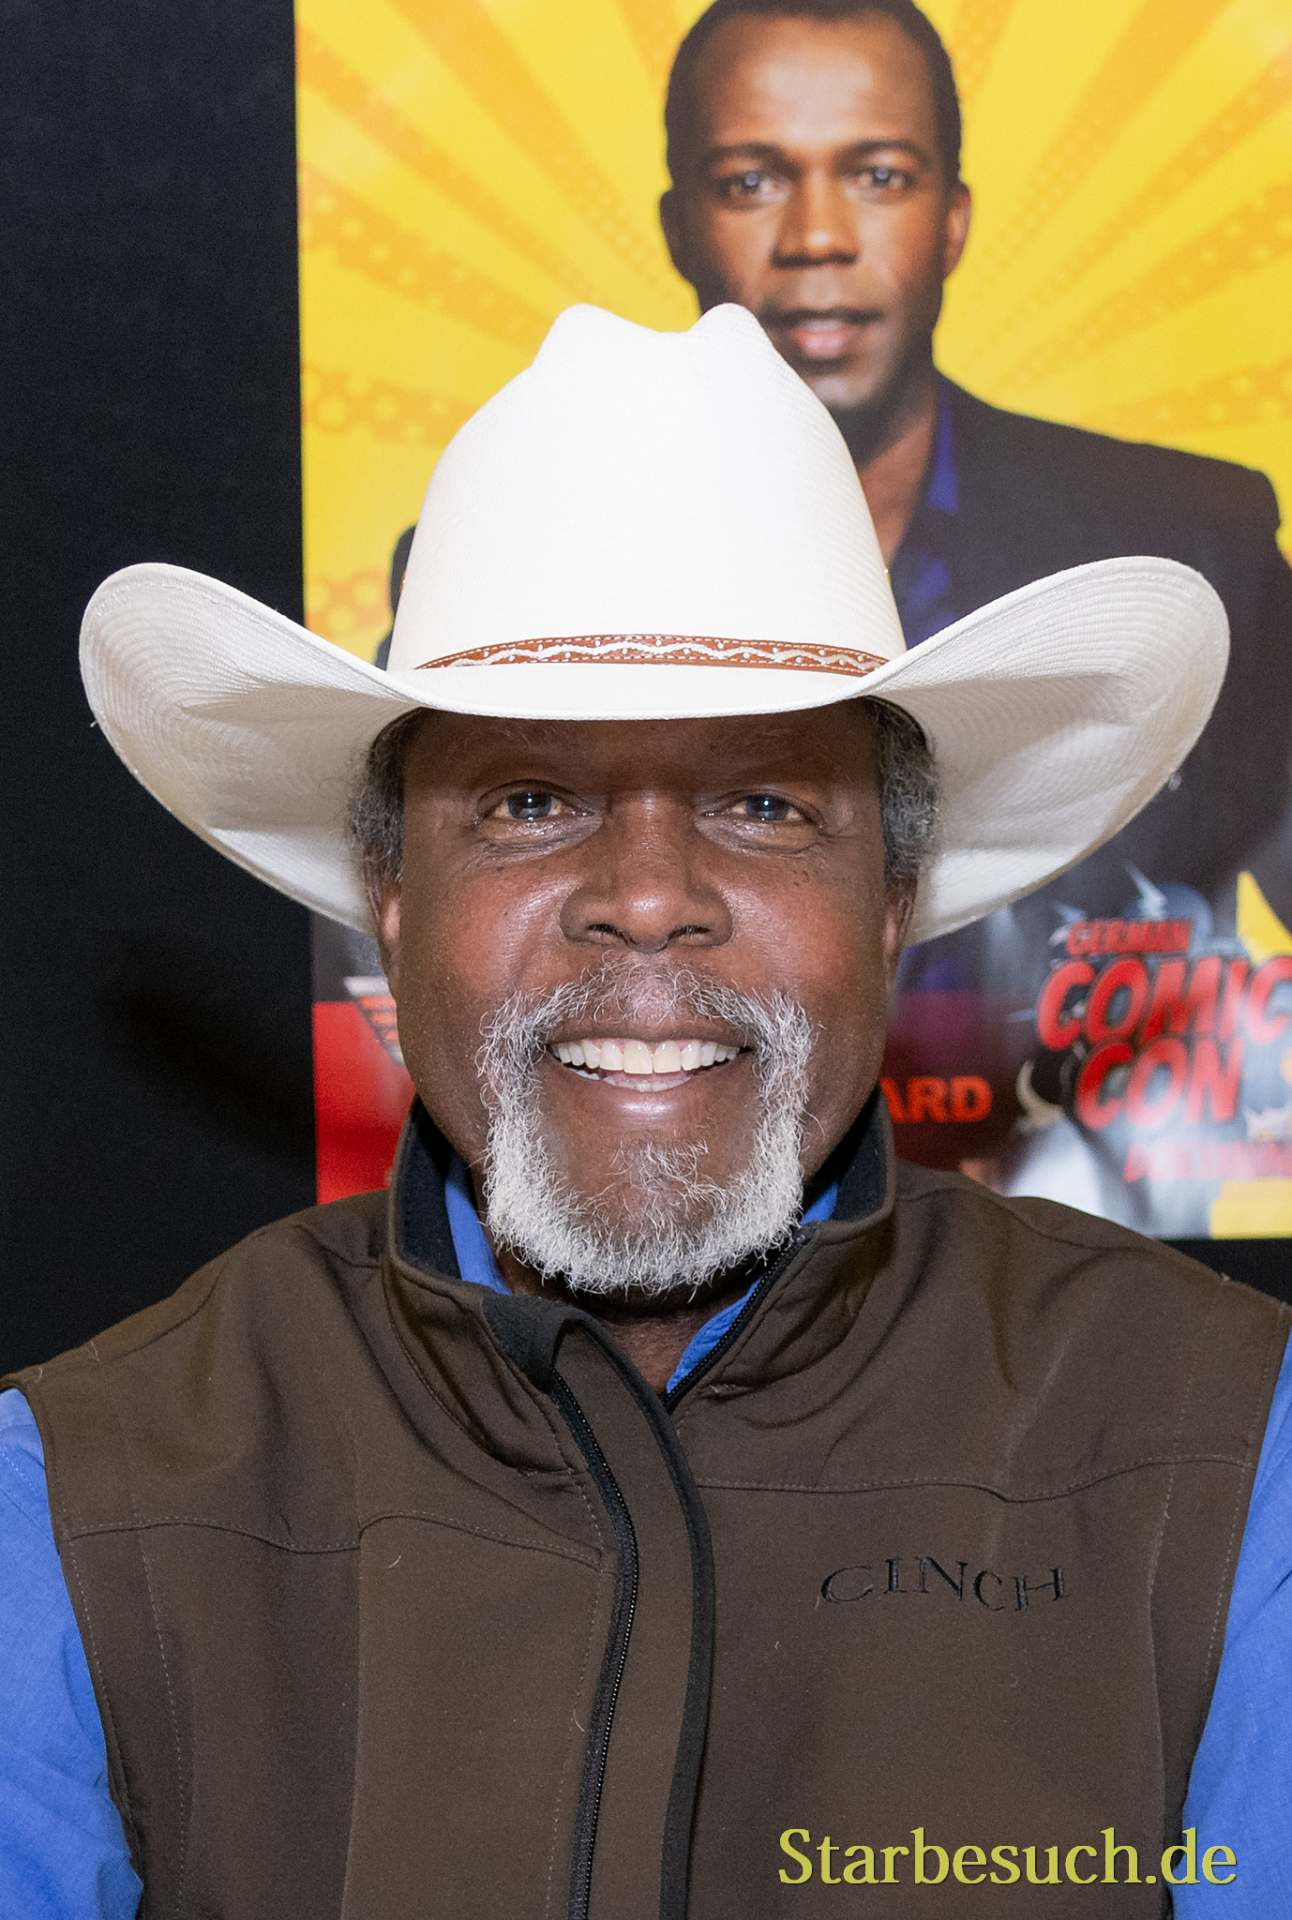 DORTMUND, GERMANY - December 1st 2018: Clarence Gillard Jr. (*1955, american actor - Walker Texas Ranger) at German Comic Con Dortmund, a two day fan convention